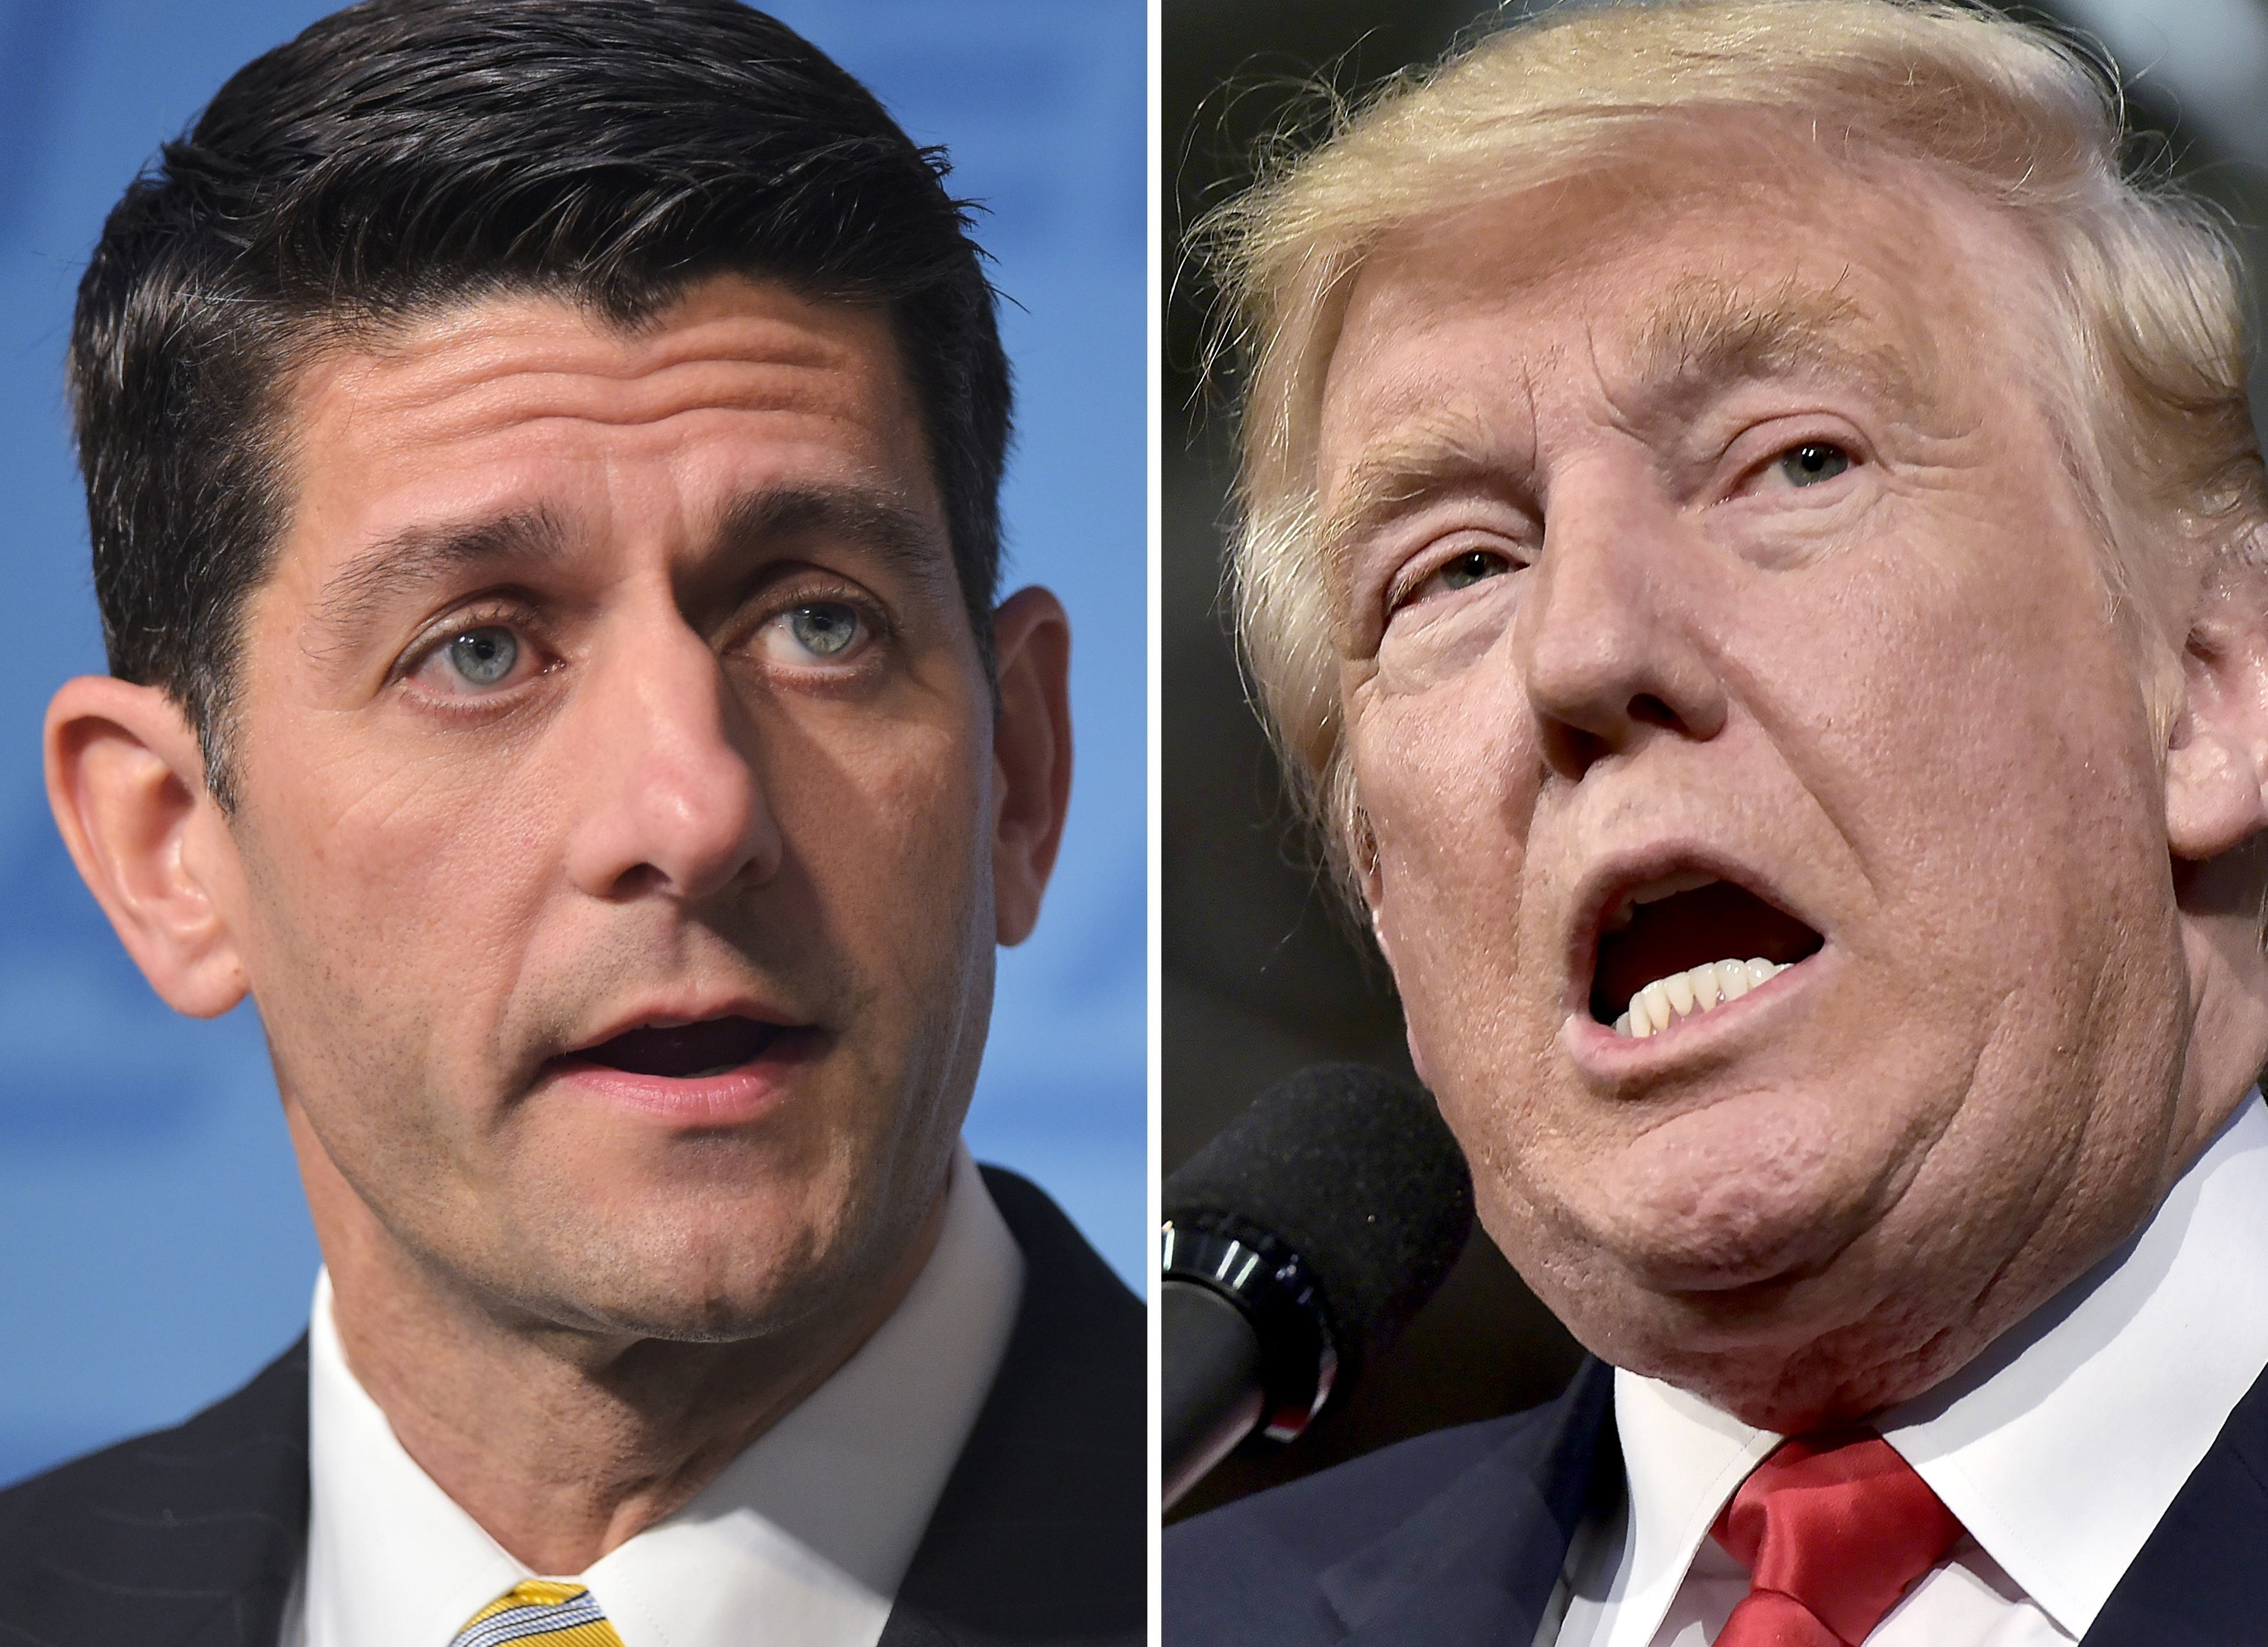 This combination of photos shows Republican presidential nominee Donald Trump(R) on October 10, 2016 and Speaker of the House Paul Ryan, R-WI, on June 22, 2016. US House Speaker Paul Ryan, the nation's top elected Republican, told lawmakers October 10, 2016 he will no longer 'defend' or campaign with presidential nominee Donald Trump, focusing instead on maintaining his party's majority in Congress. / AFP / PHOTO DESK        (Photo credit should read PHOTO DESK/AFP/Getty Images)